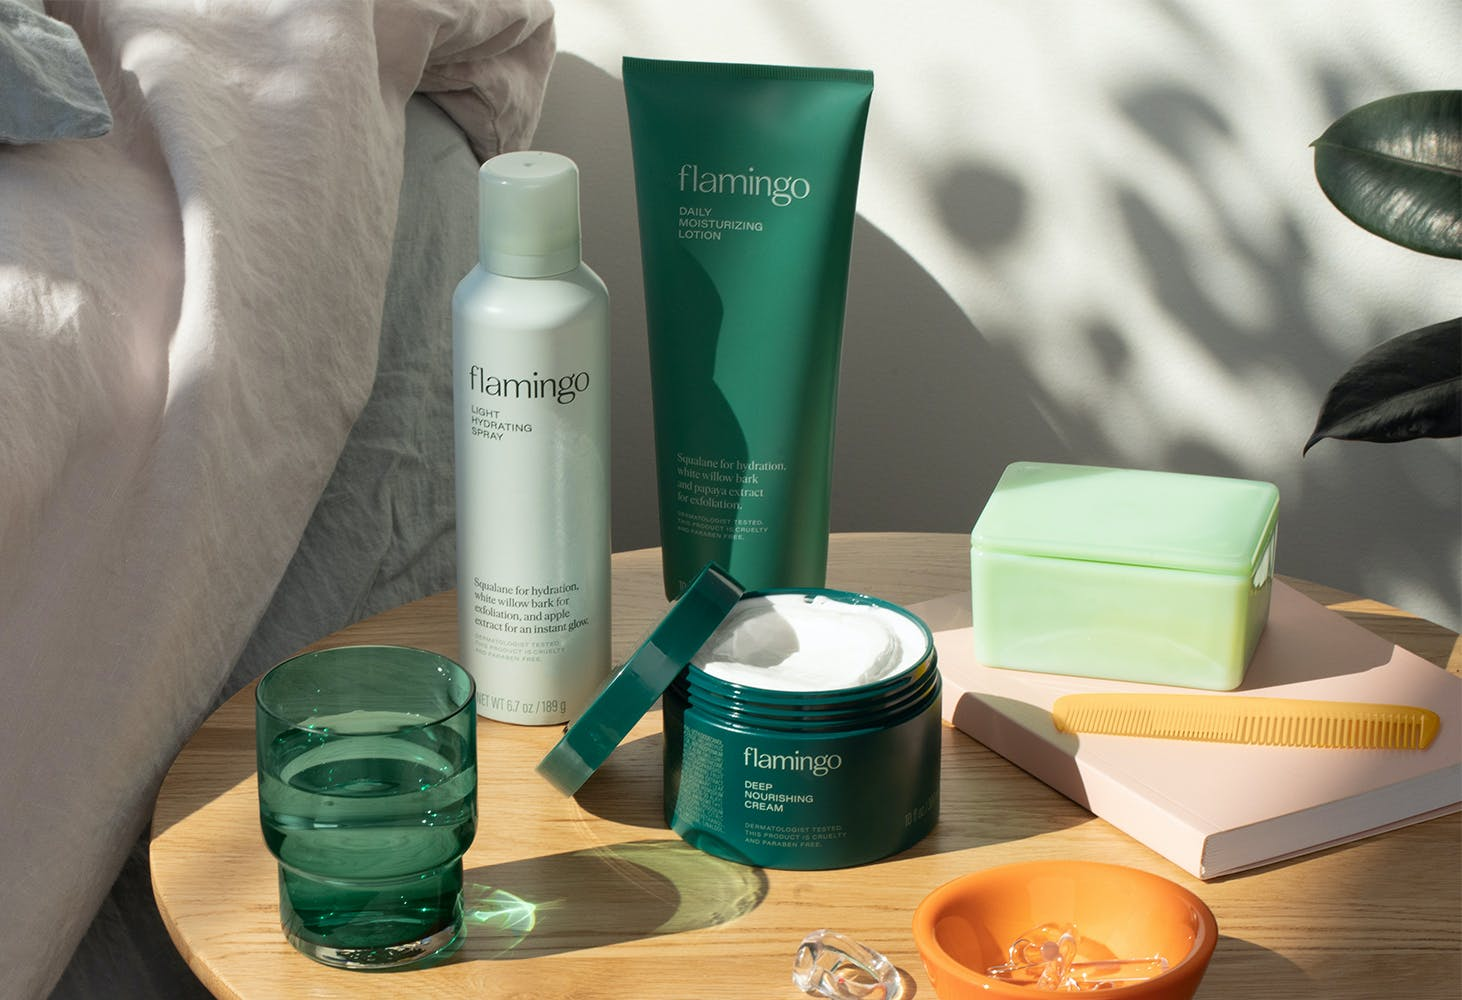 Light hydrating spray, daily moisturizing lotion, and deep nourishing cream on a bed side table